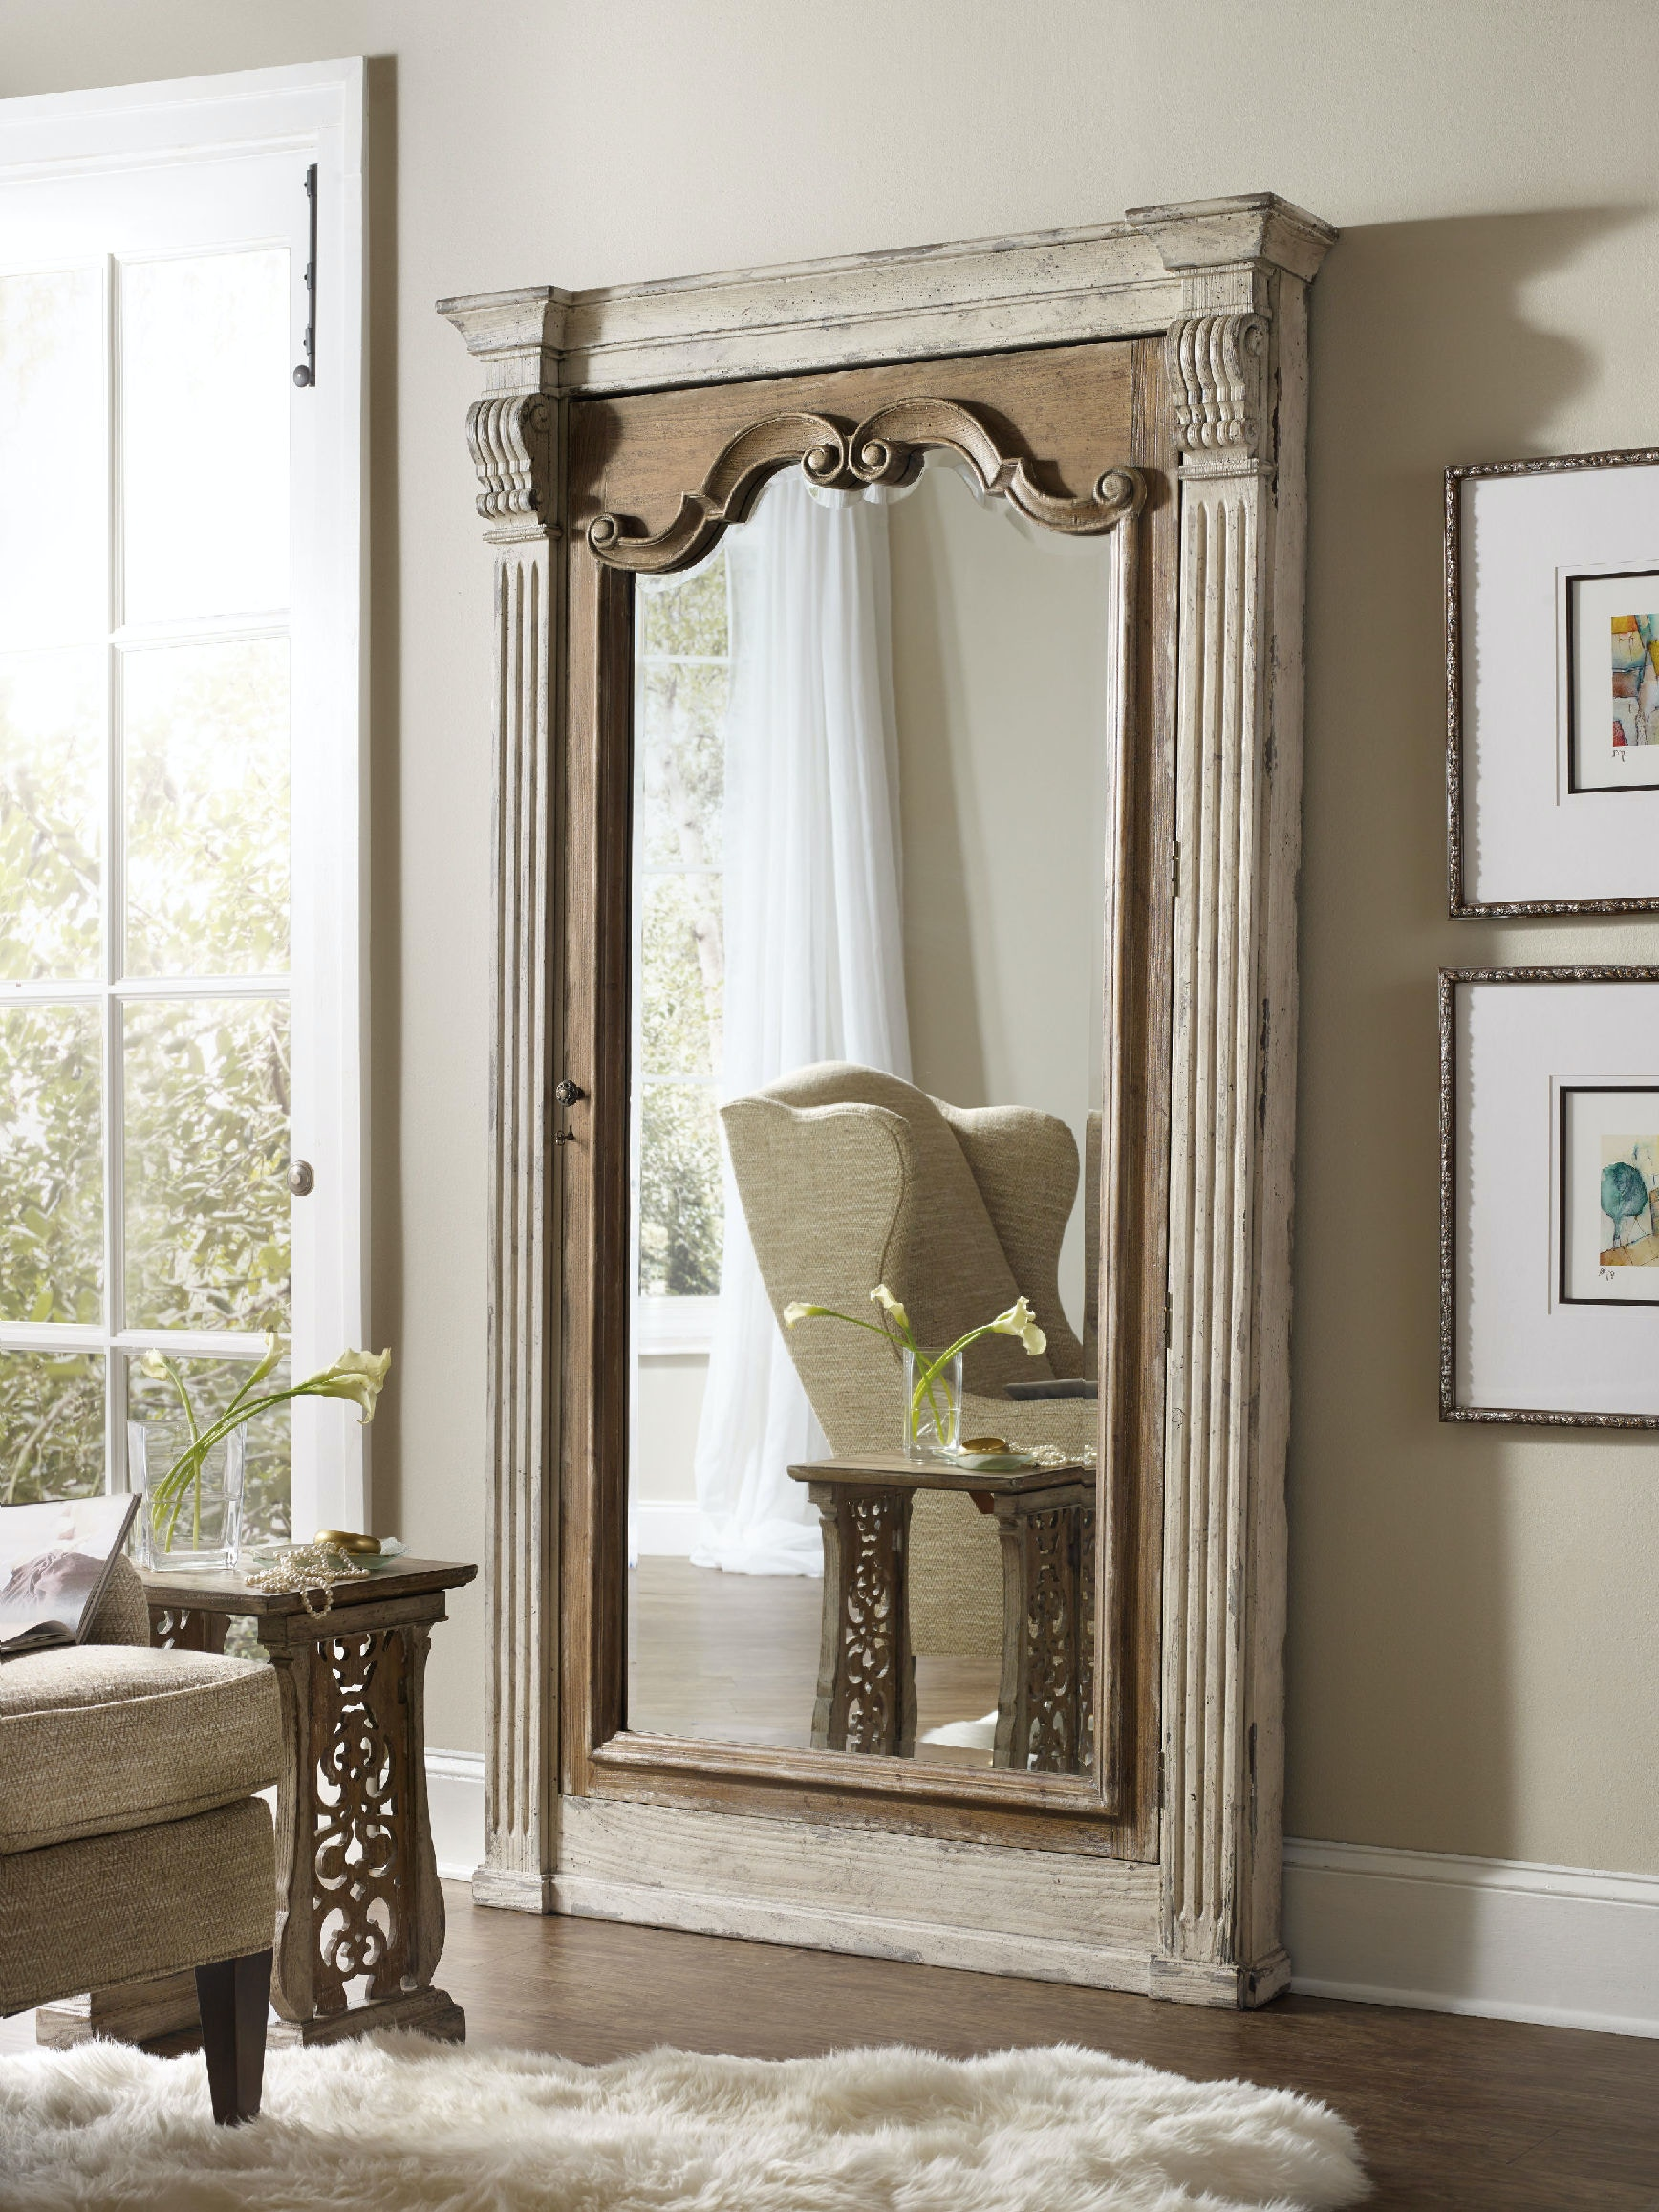 Incroyable Hooker Furniture Chatelet Floor Mirror W/Jewelry Armoire Storage 5351 50003